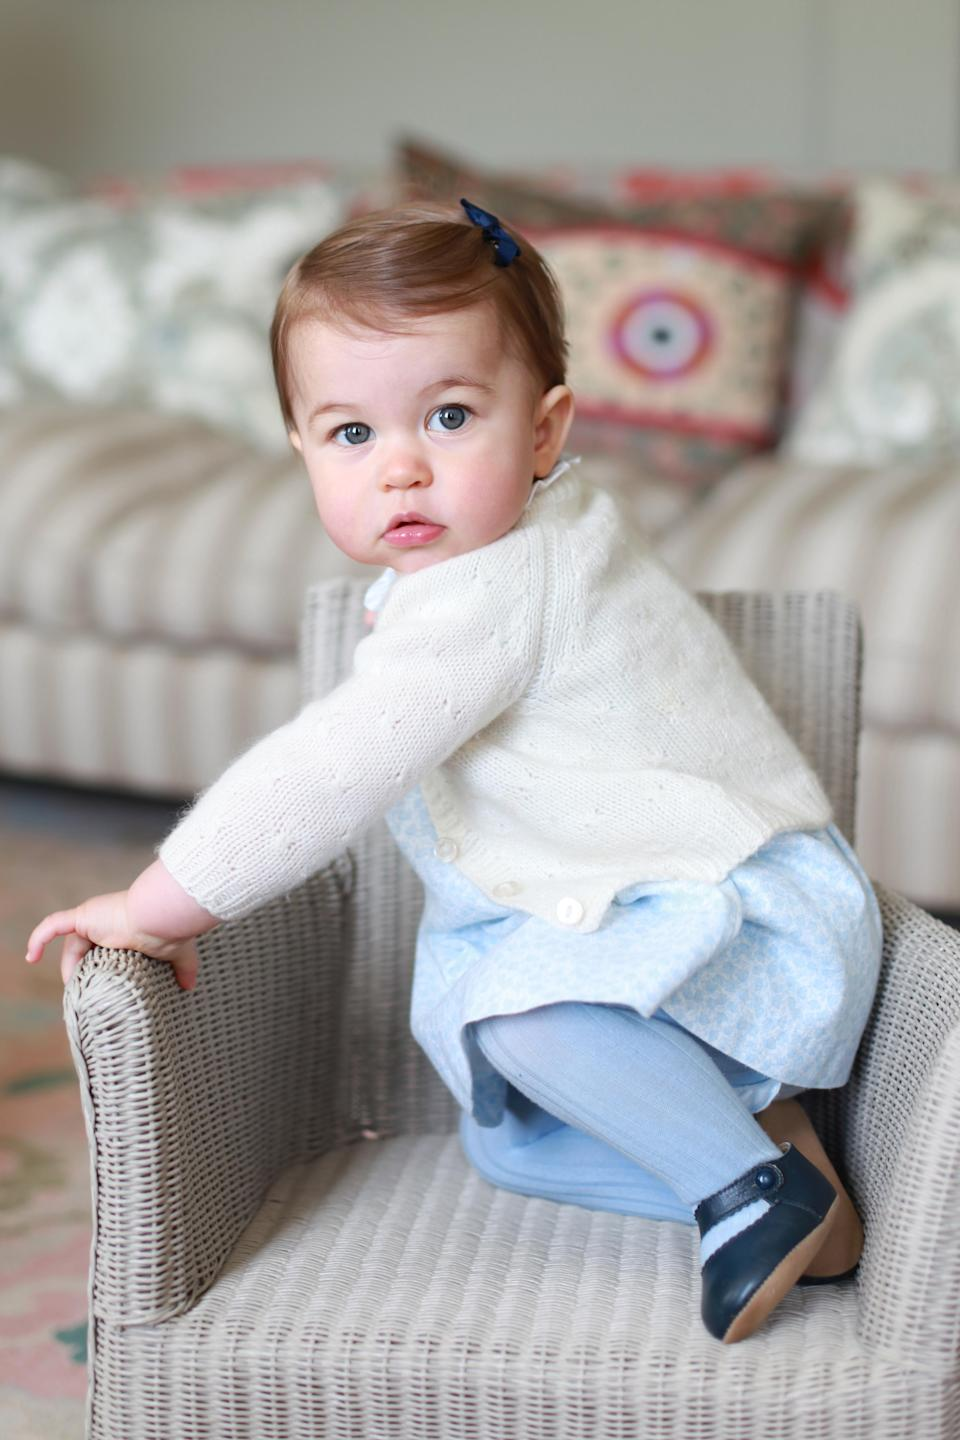 He also bears a striking resemblance to his sister, Princess Charlotte, when she turned one. [Photo: Getty Images]